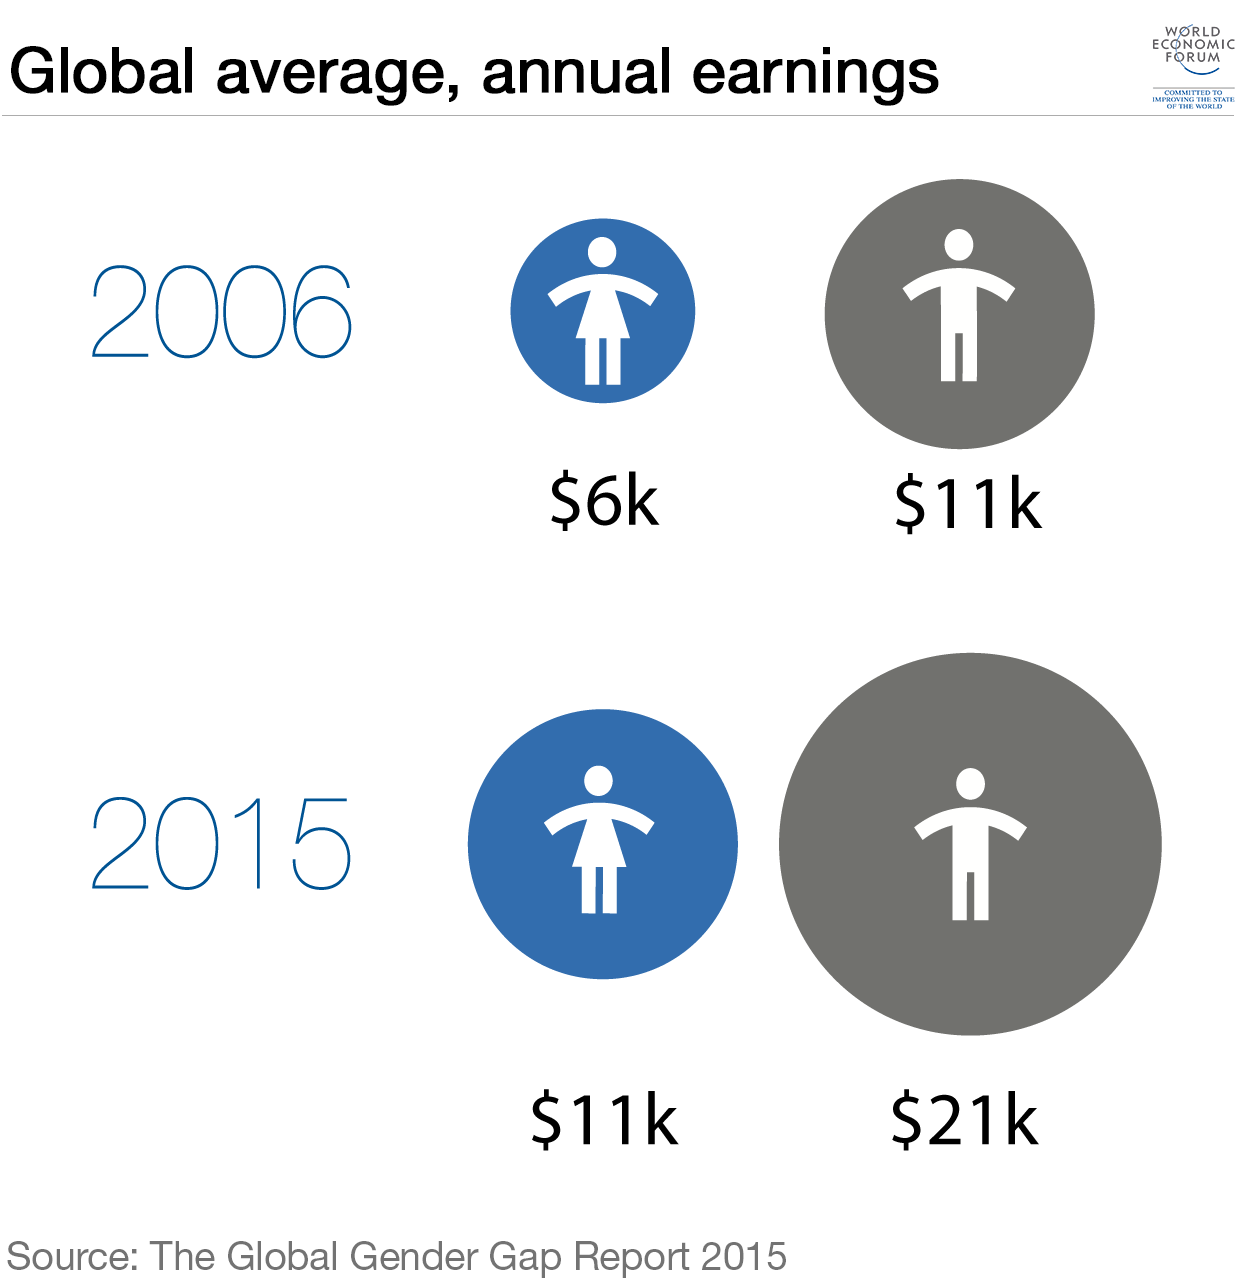 151123-global average wage women men gender equality report 2006 2015 infographic